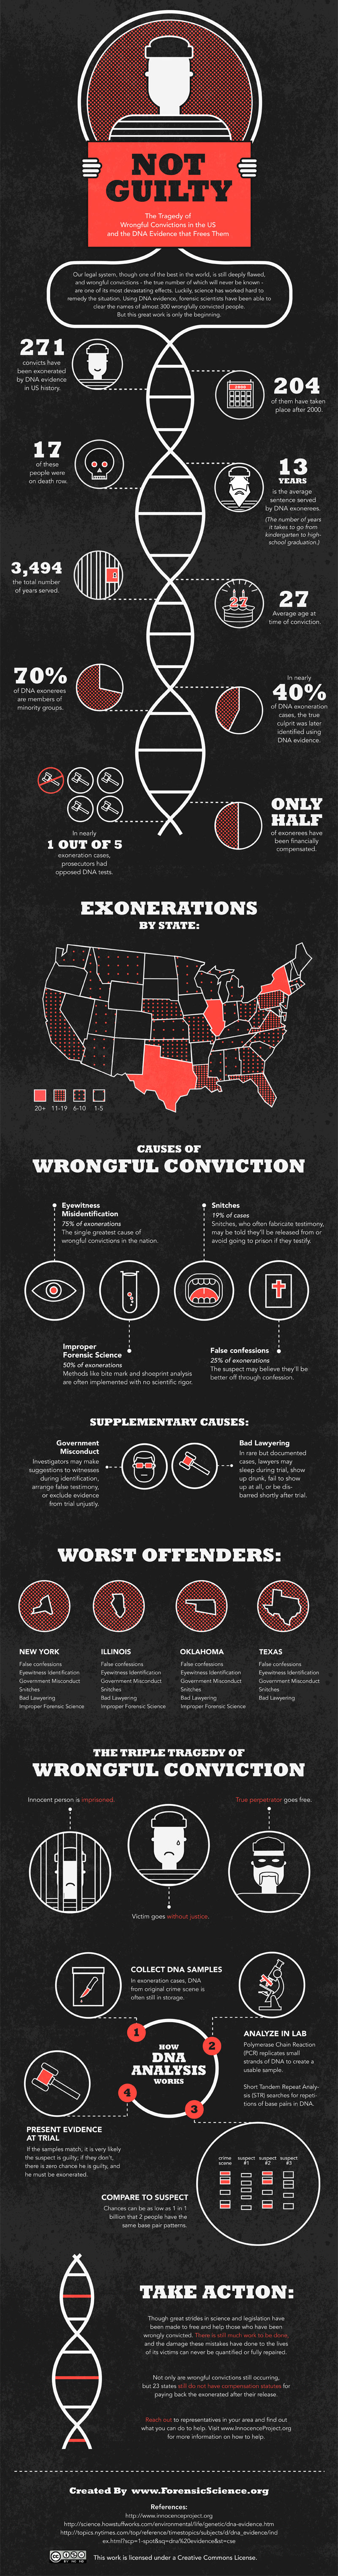 Wrongful Convictions Stats